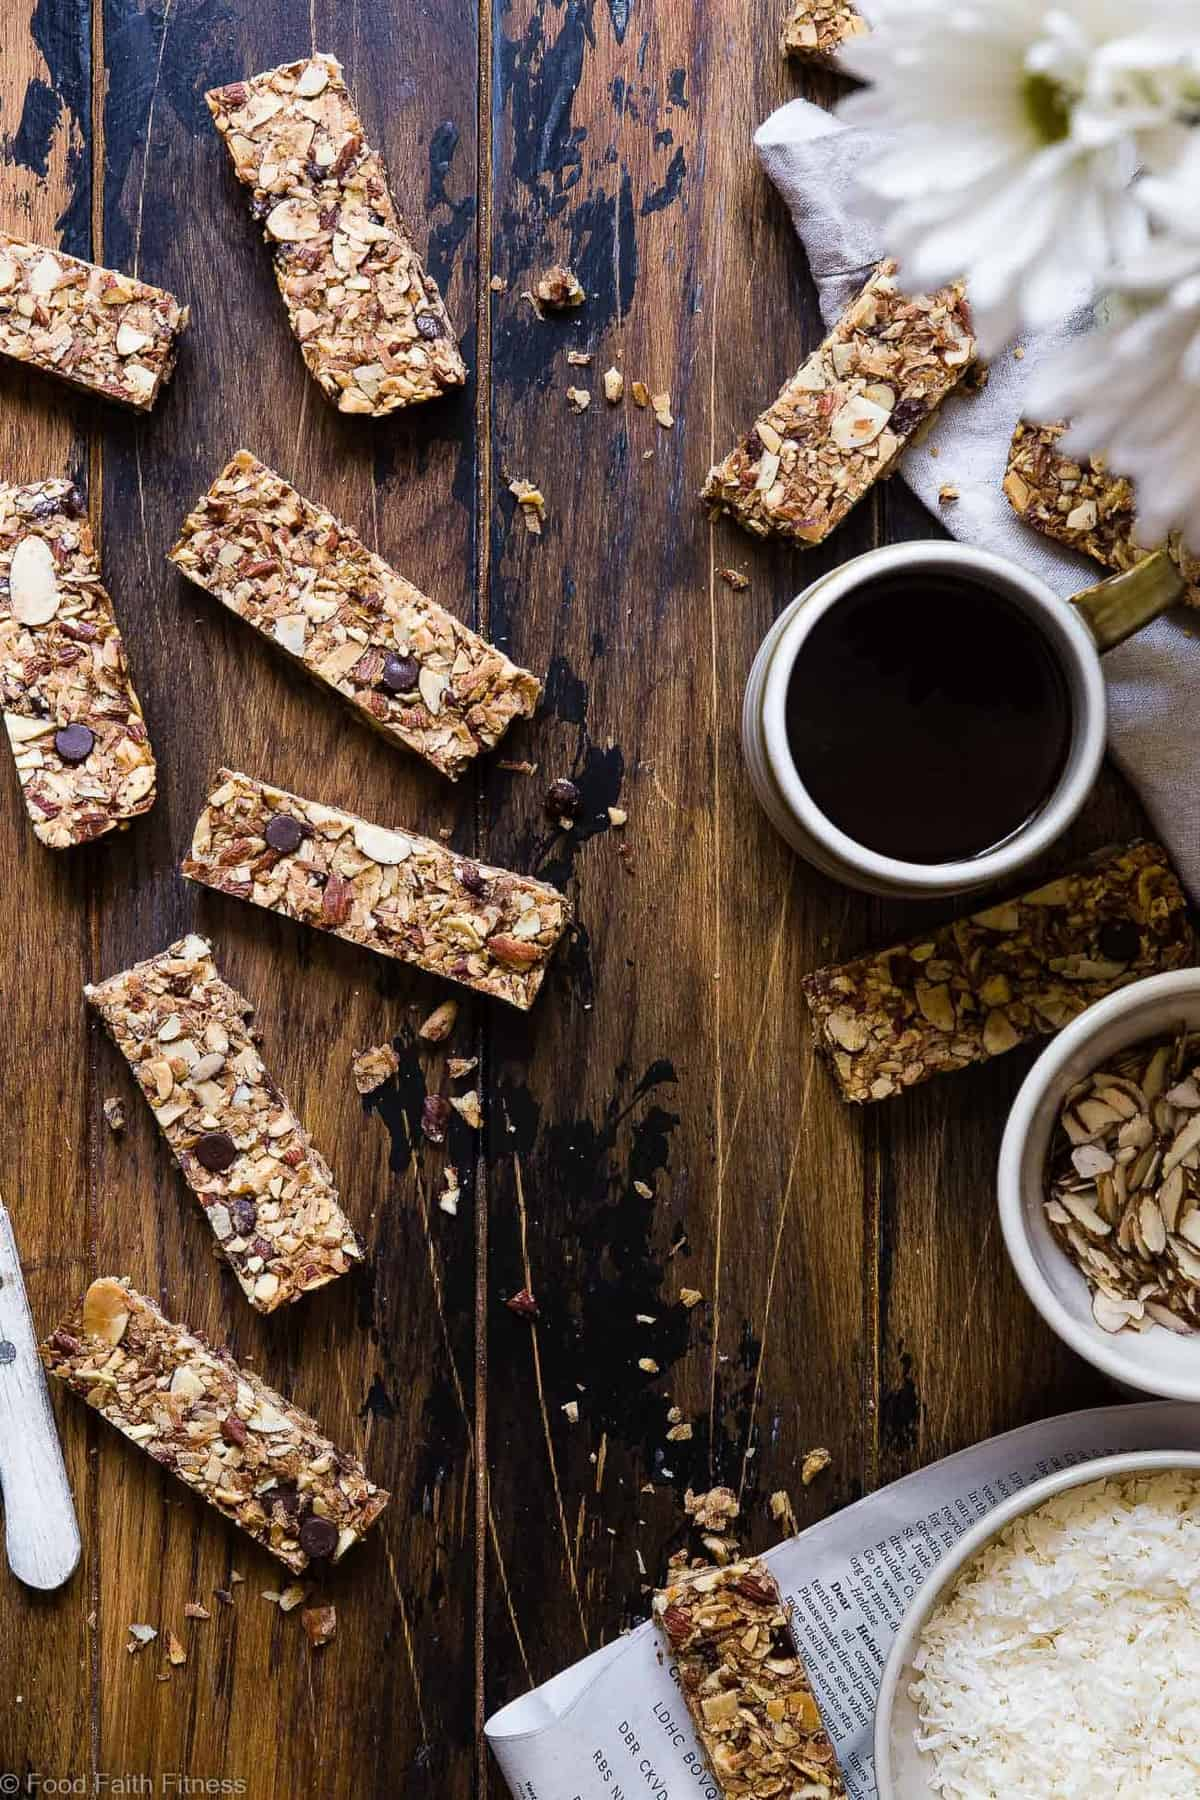 Healthy Sugar Free Keto Low Carb Granola Bars | Food Faith Fitness